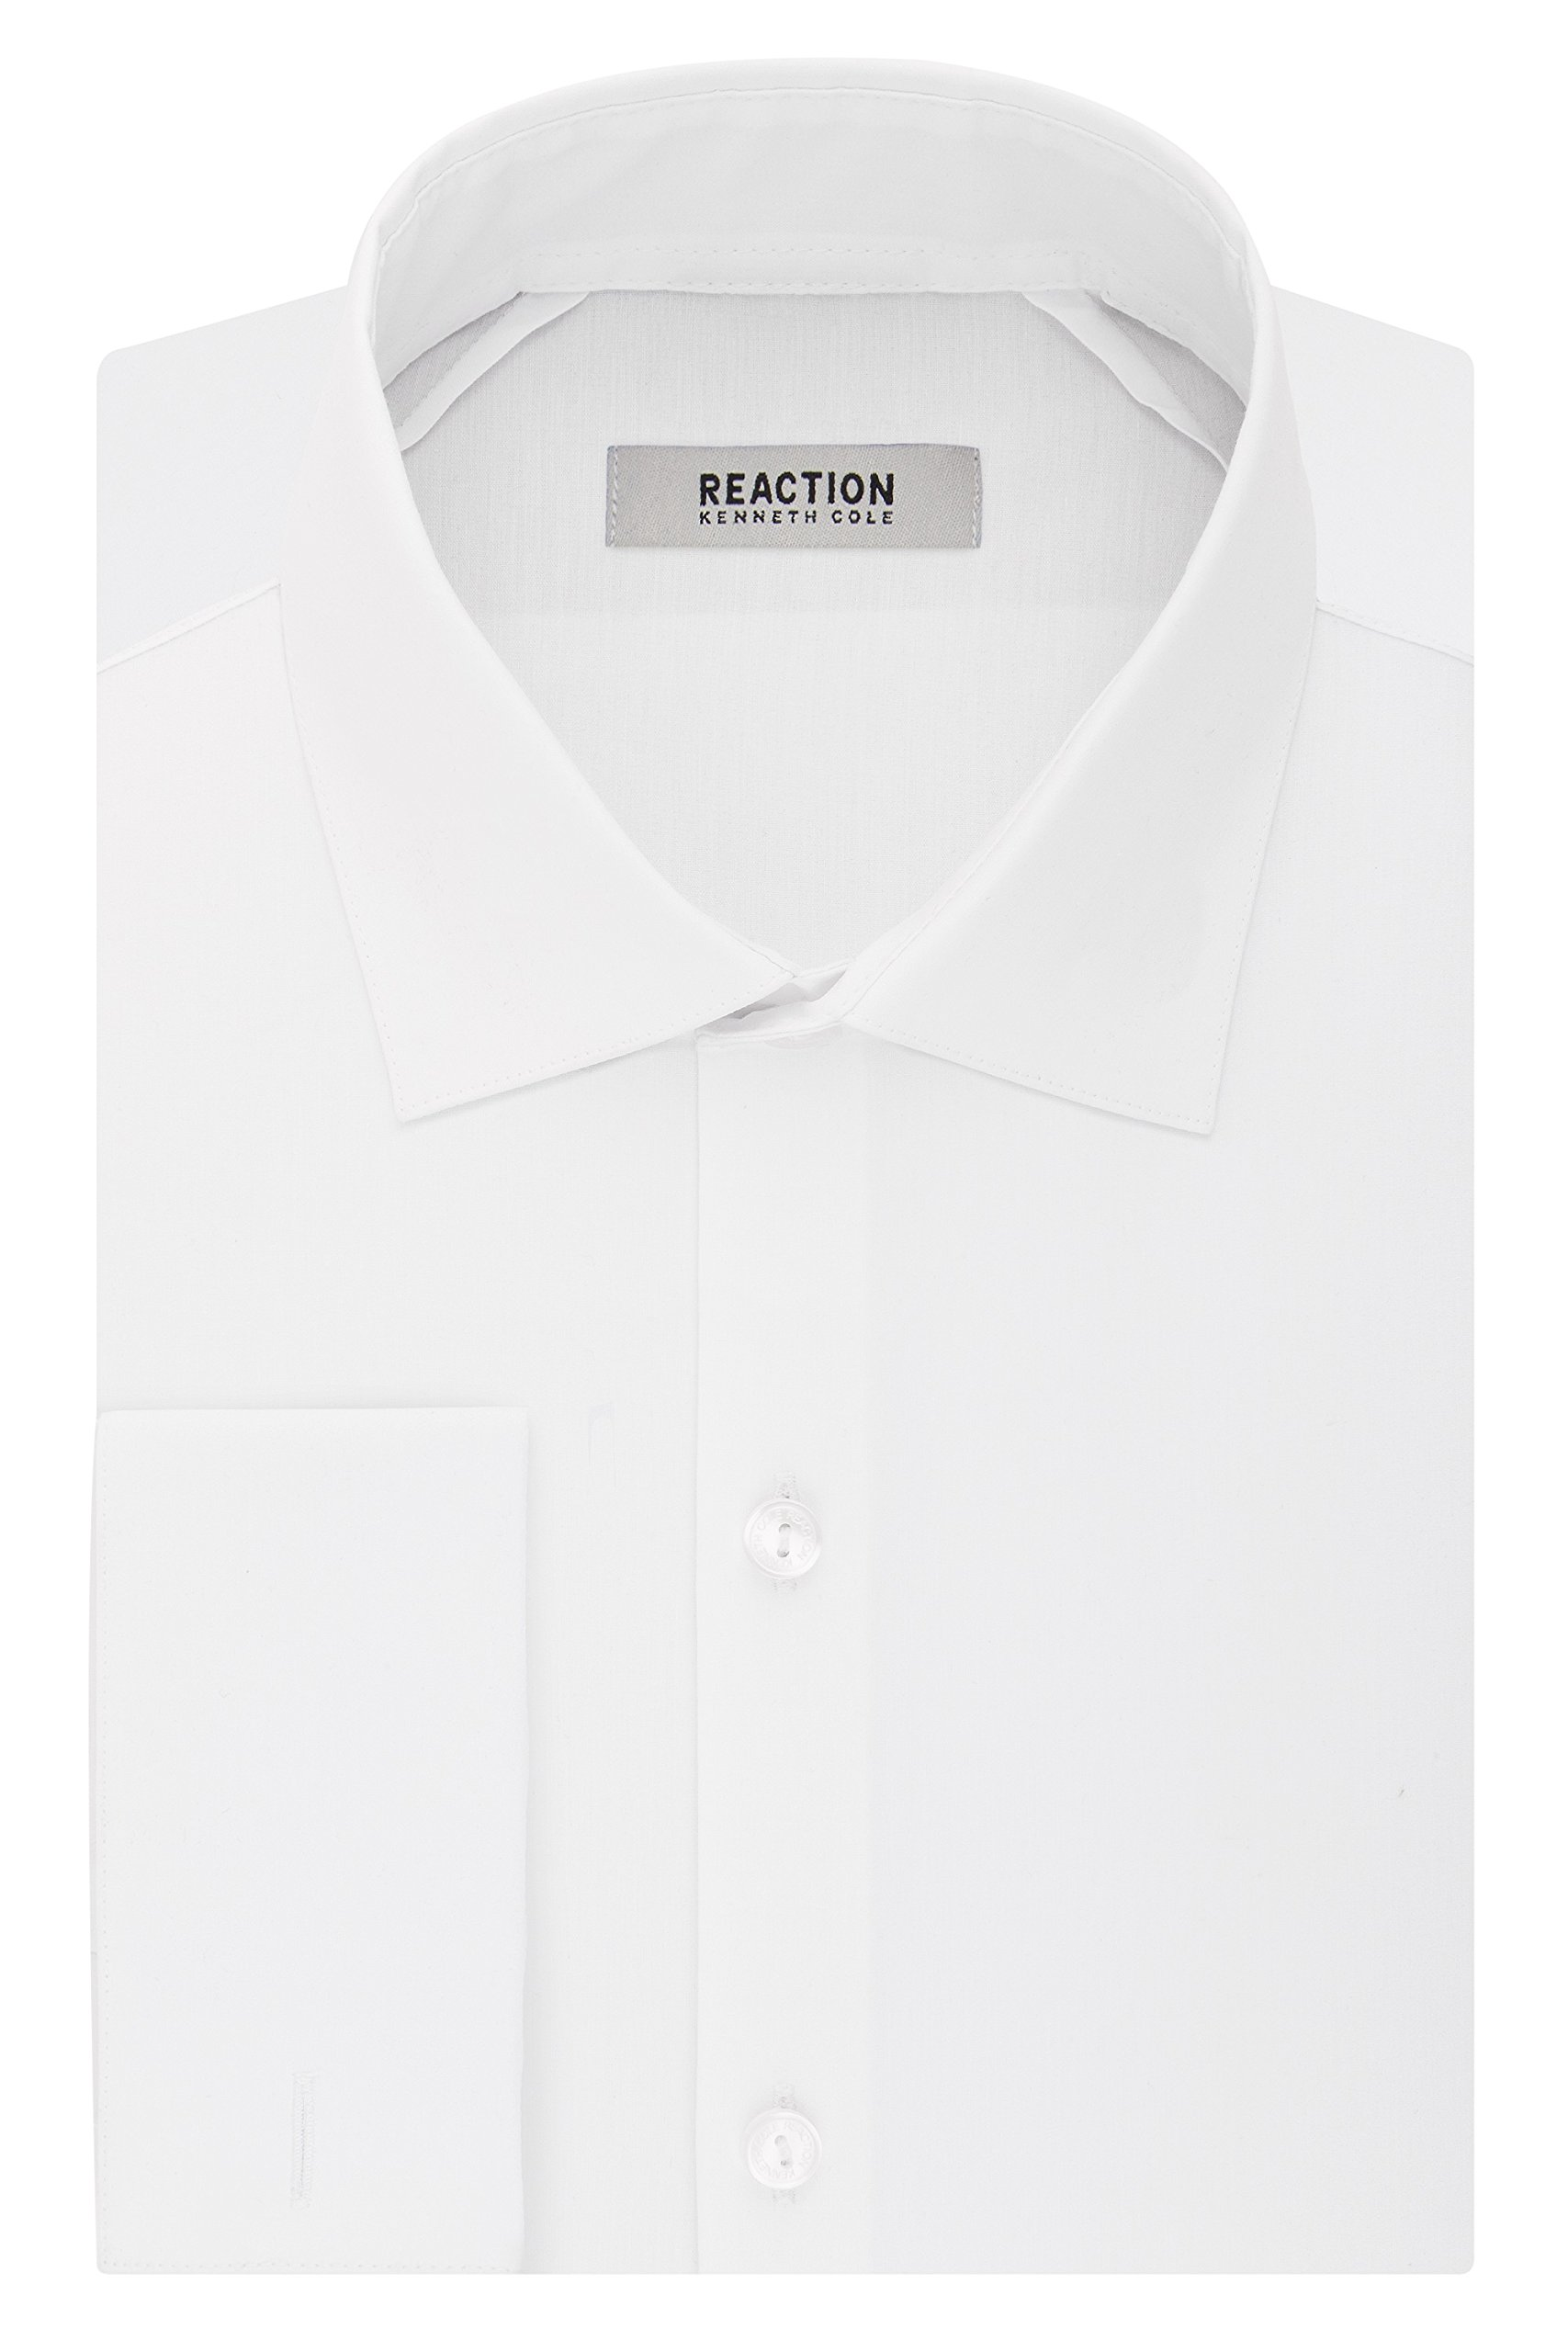 Kenneth Cole REACTION Men's Technicole Slim Fit Stretch Solid French Cuff Spread Collar Dress Shirt, White, 15.5'' Neck 32-33'' Sleeve